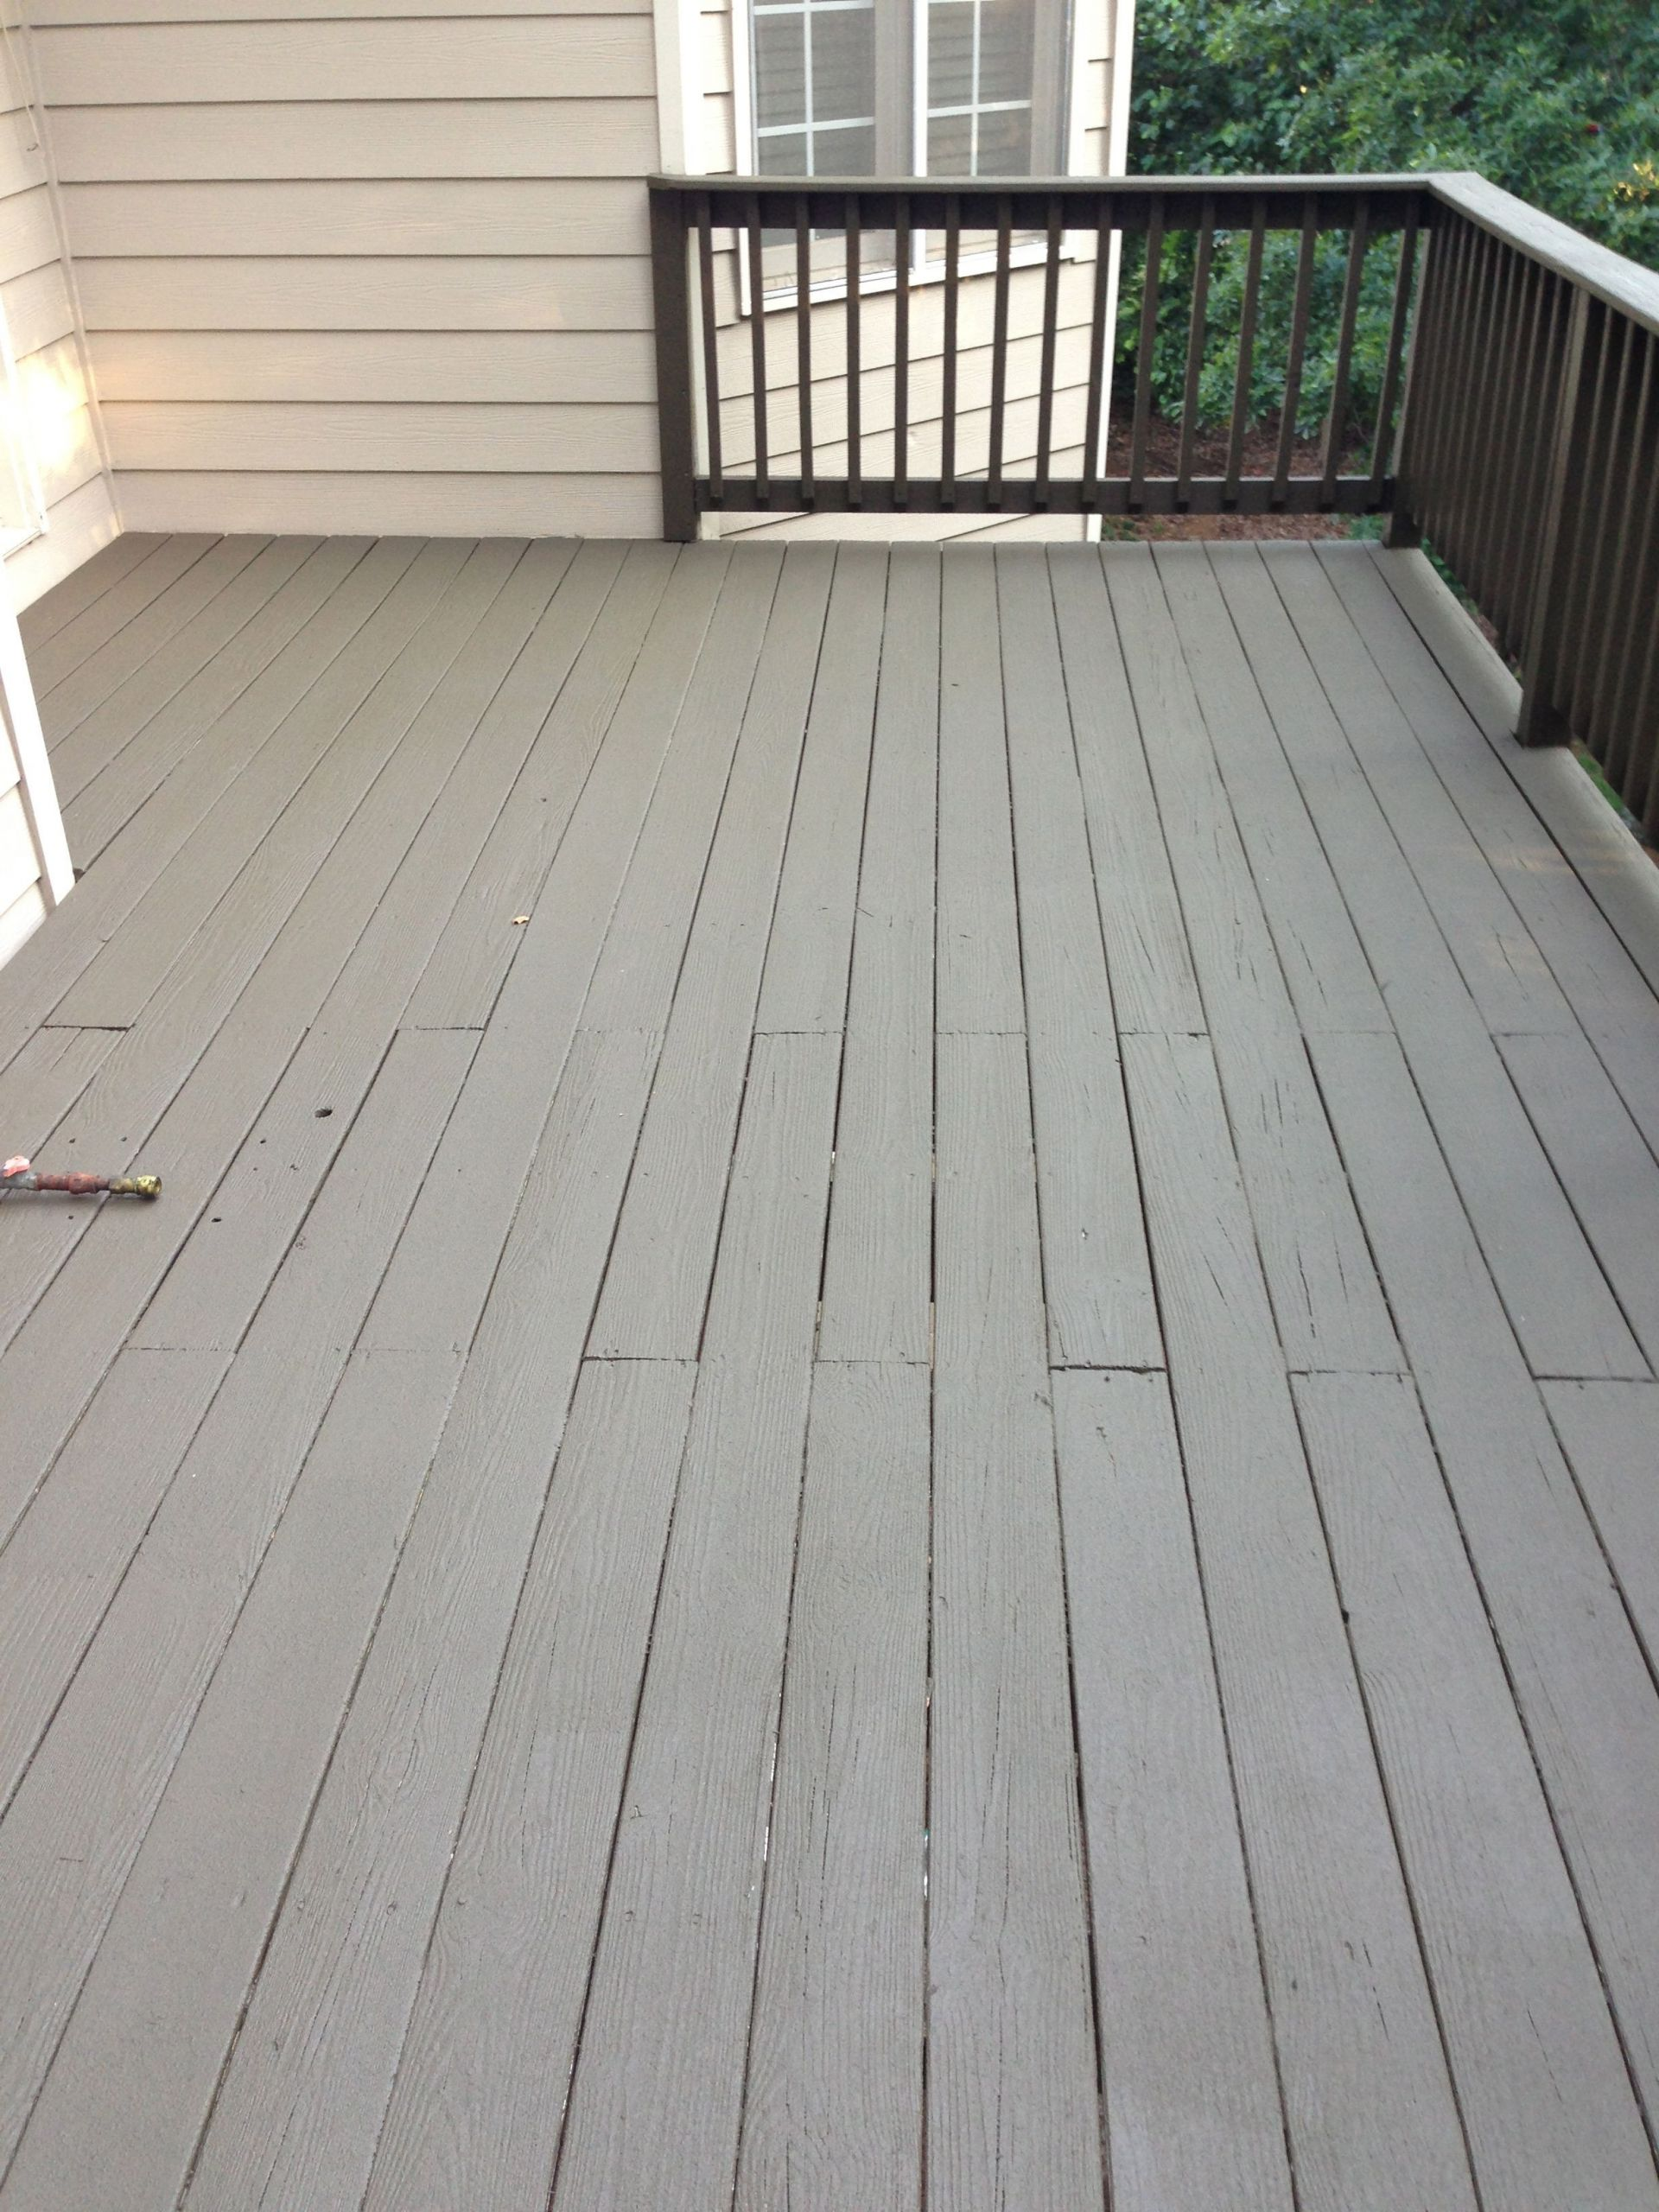 Cool Deck Paint Sherwin Williams  After photo Sherwin Williams Deck Revive fills cracks